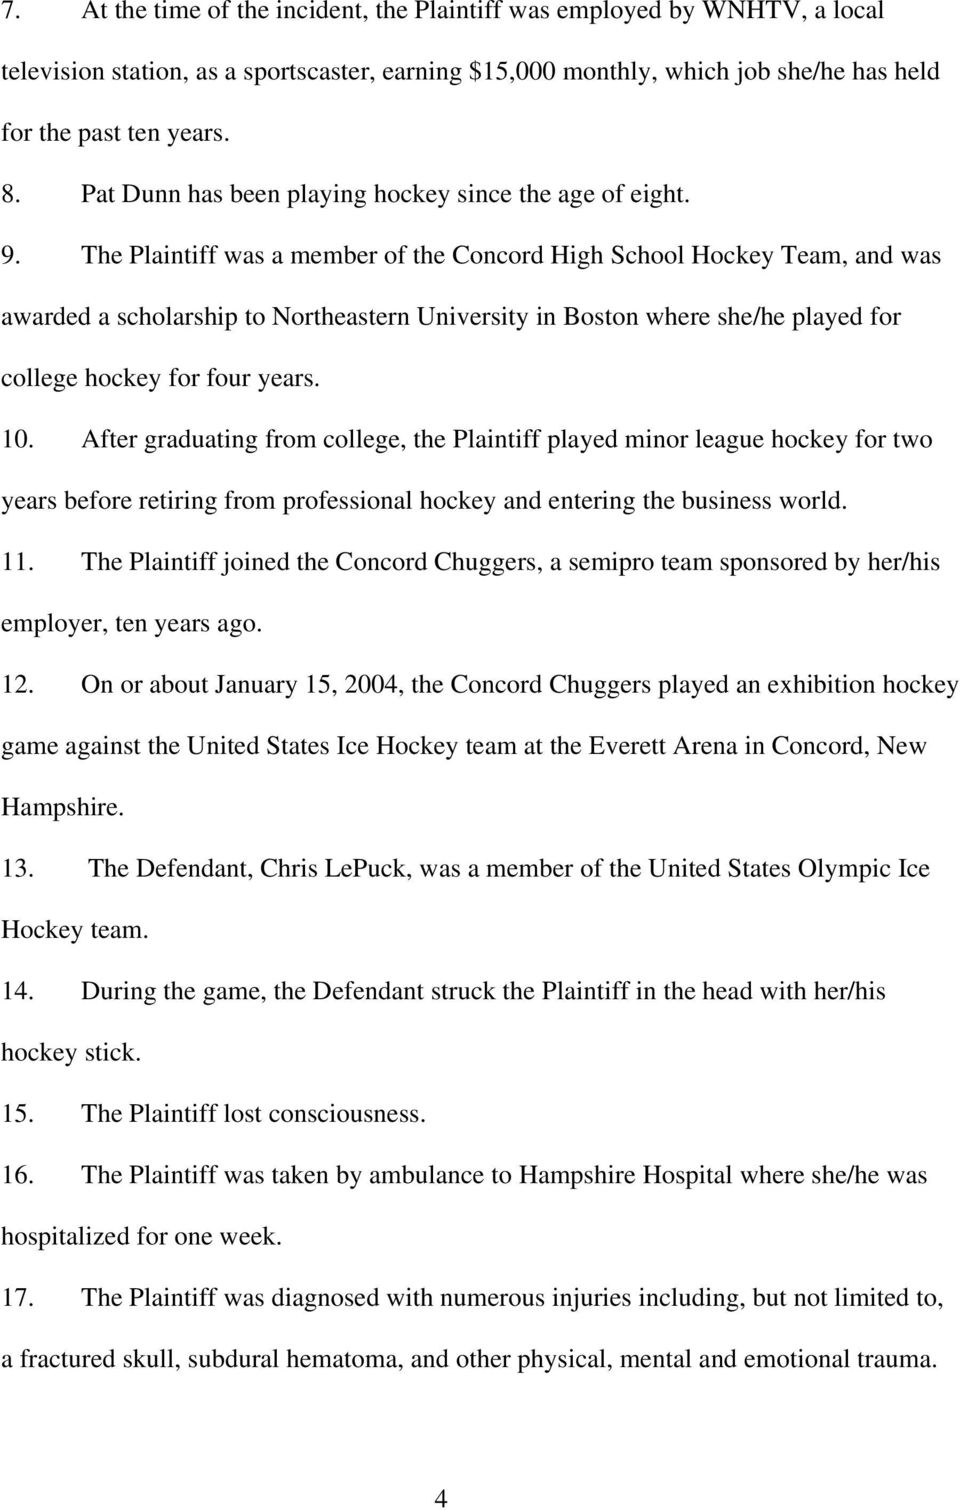 The Plaintiff was a member of the Concord High School Hockey Team, and was awarded a scholarship to Northeastern University in Boston where she/he played for college hockey for four years. 10.